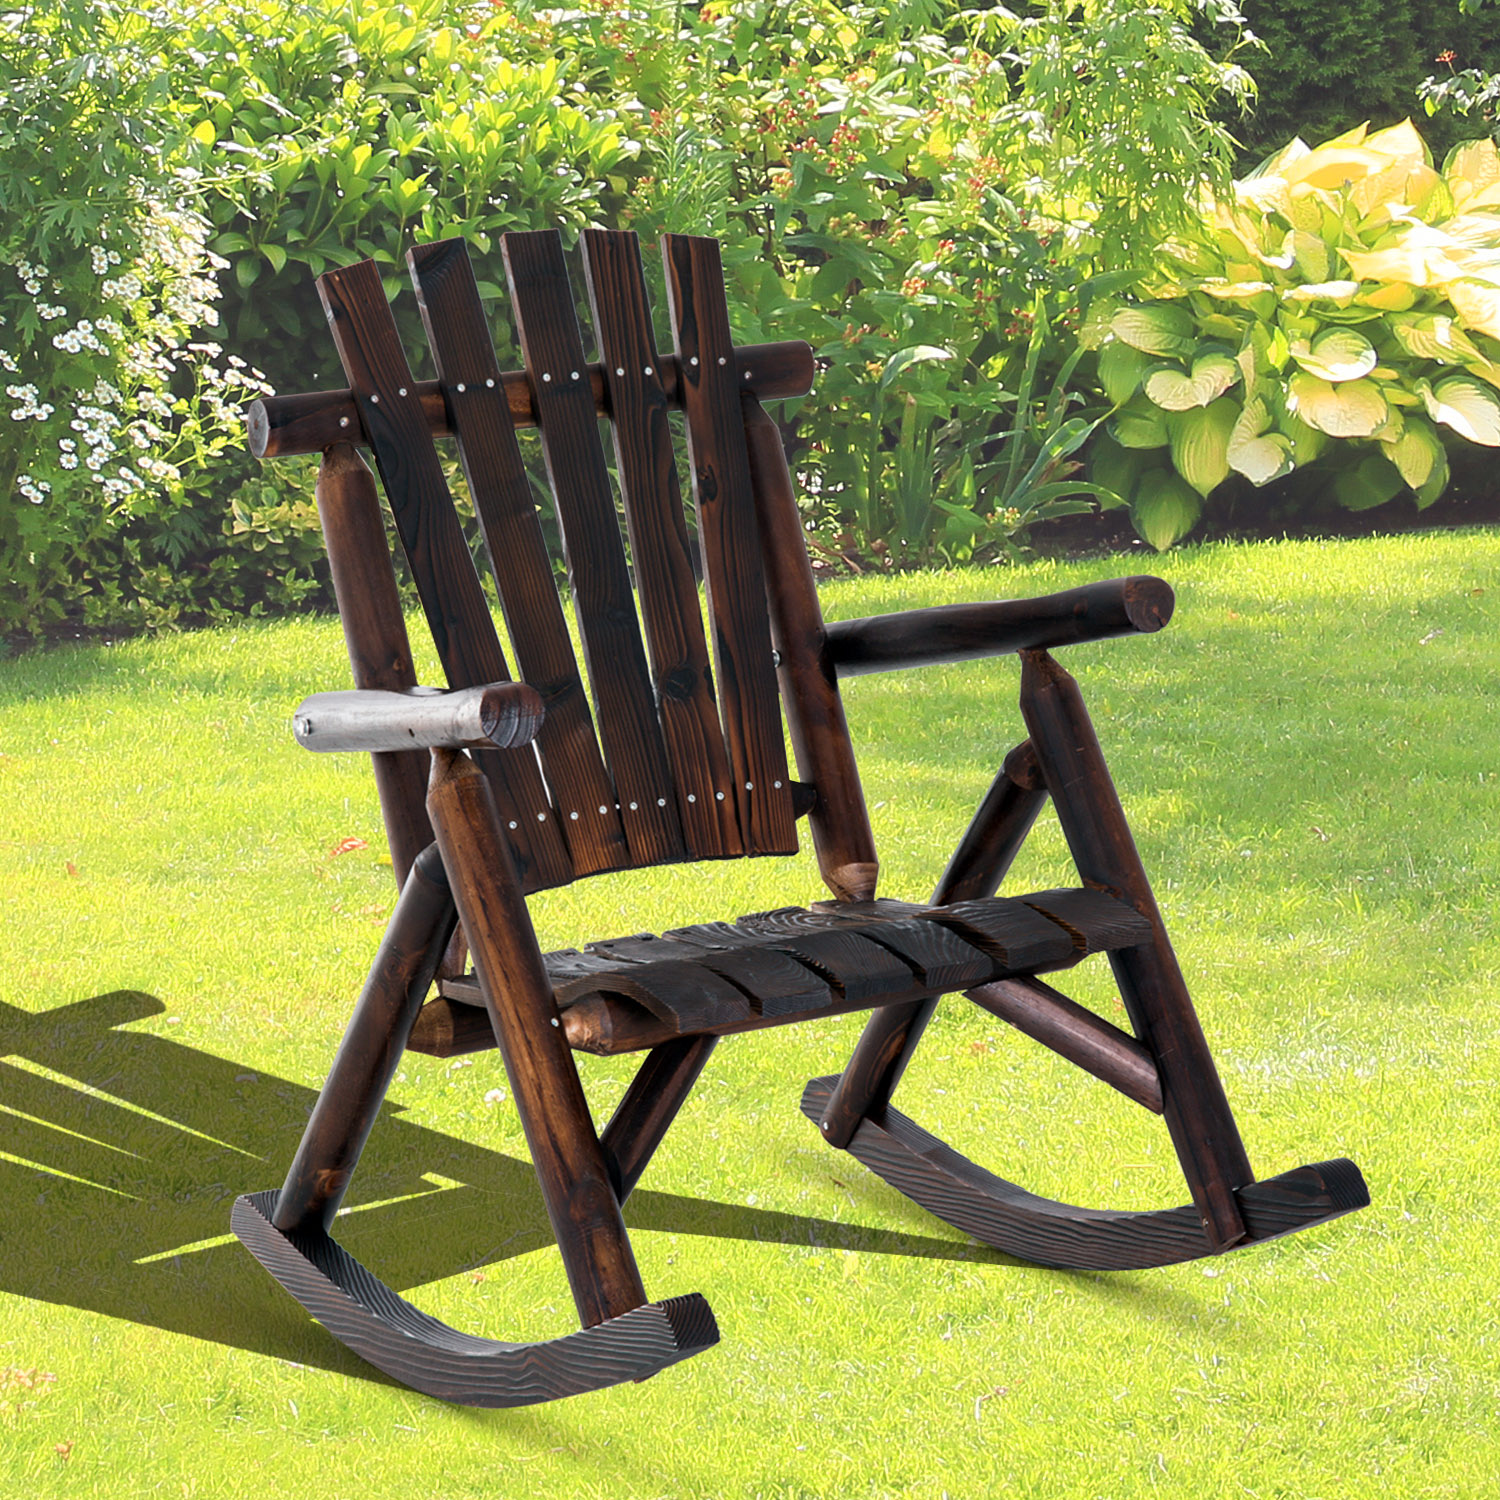 super popular bec49 477dc Details about Outsunny Fir Wood Rustic Outdoor Patio Adirondack Rocking  Chair Porch Rocker